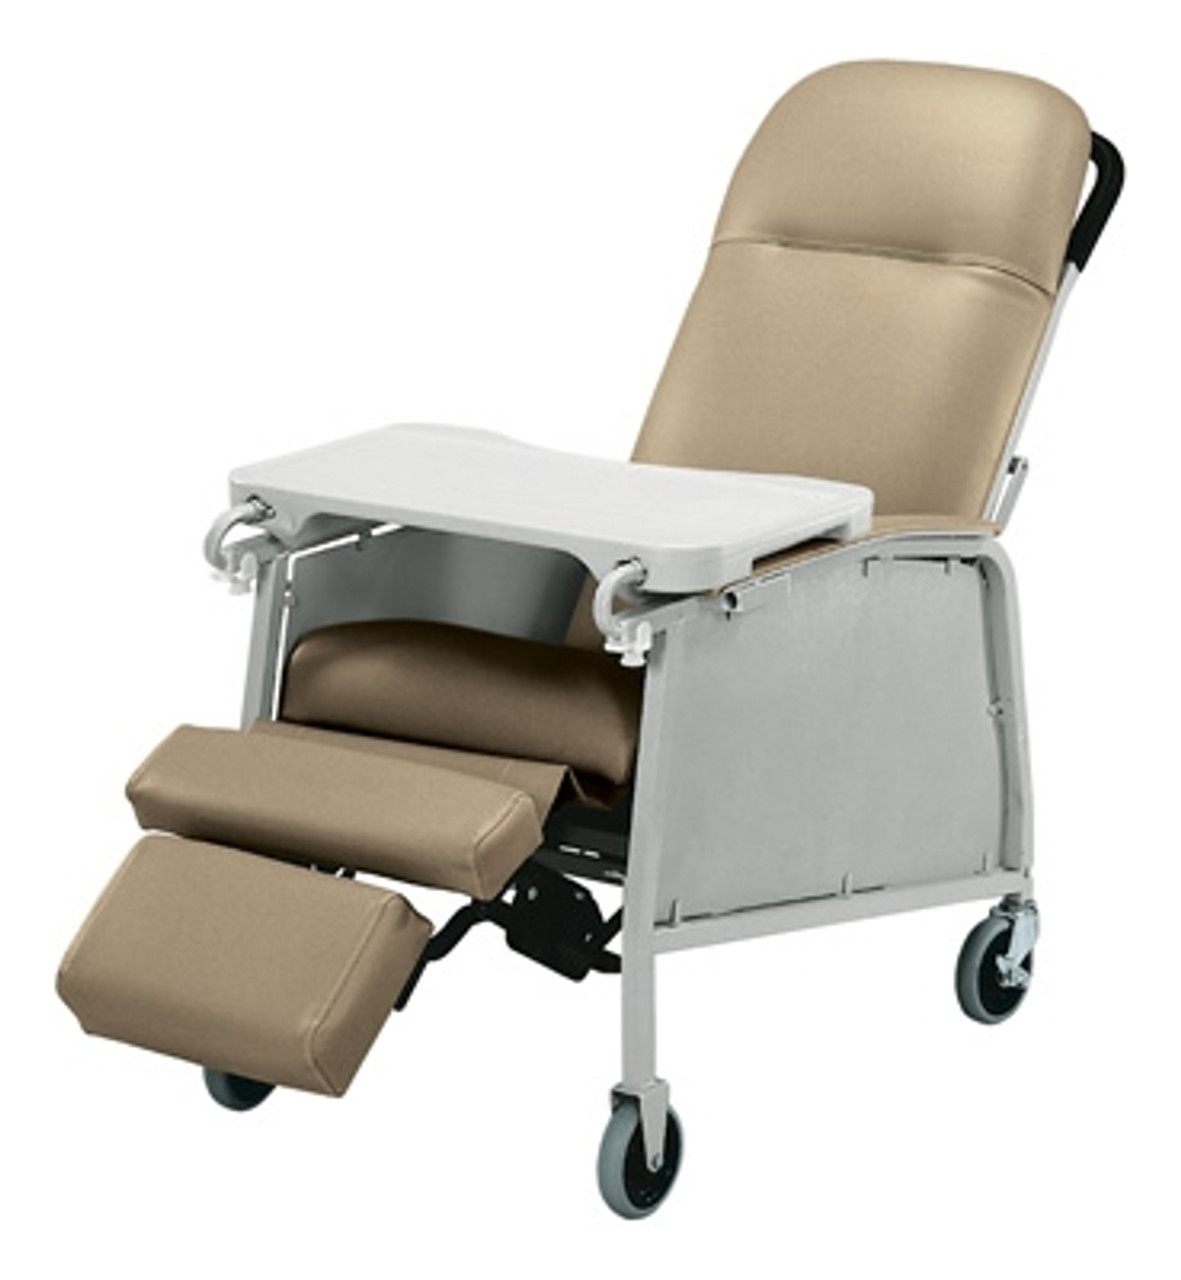 Lumex 3 Position Recliner Geri Chair